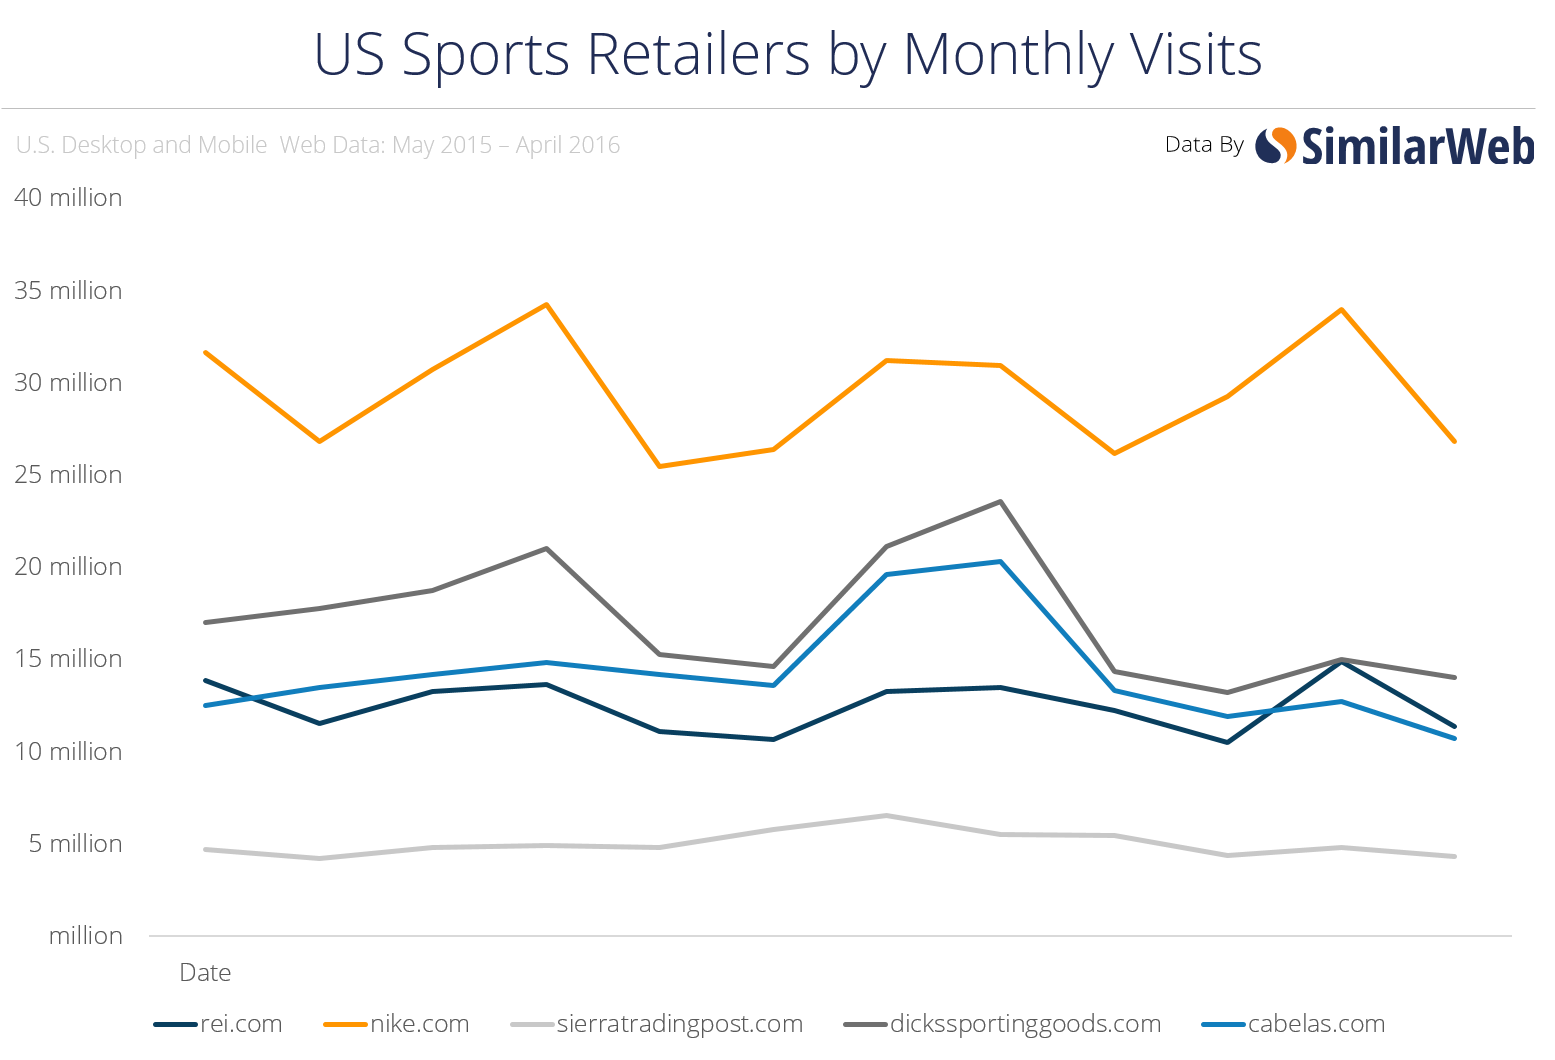 US Sports Retailers Feel Amazon at Their Heels